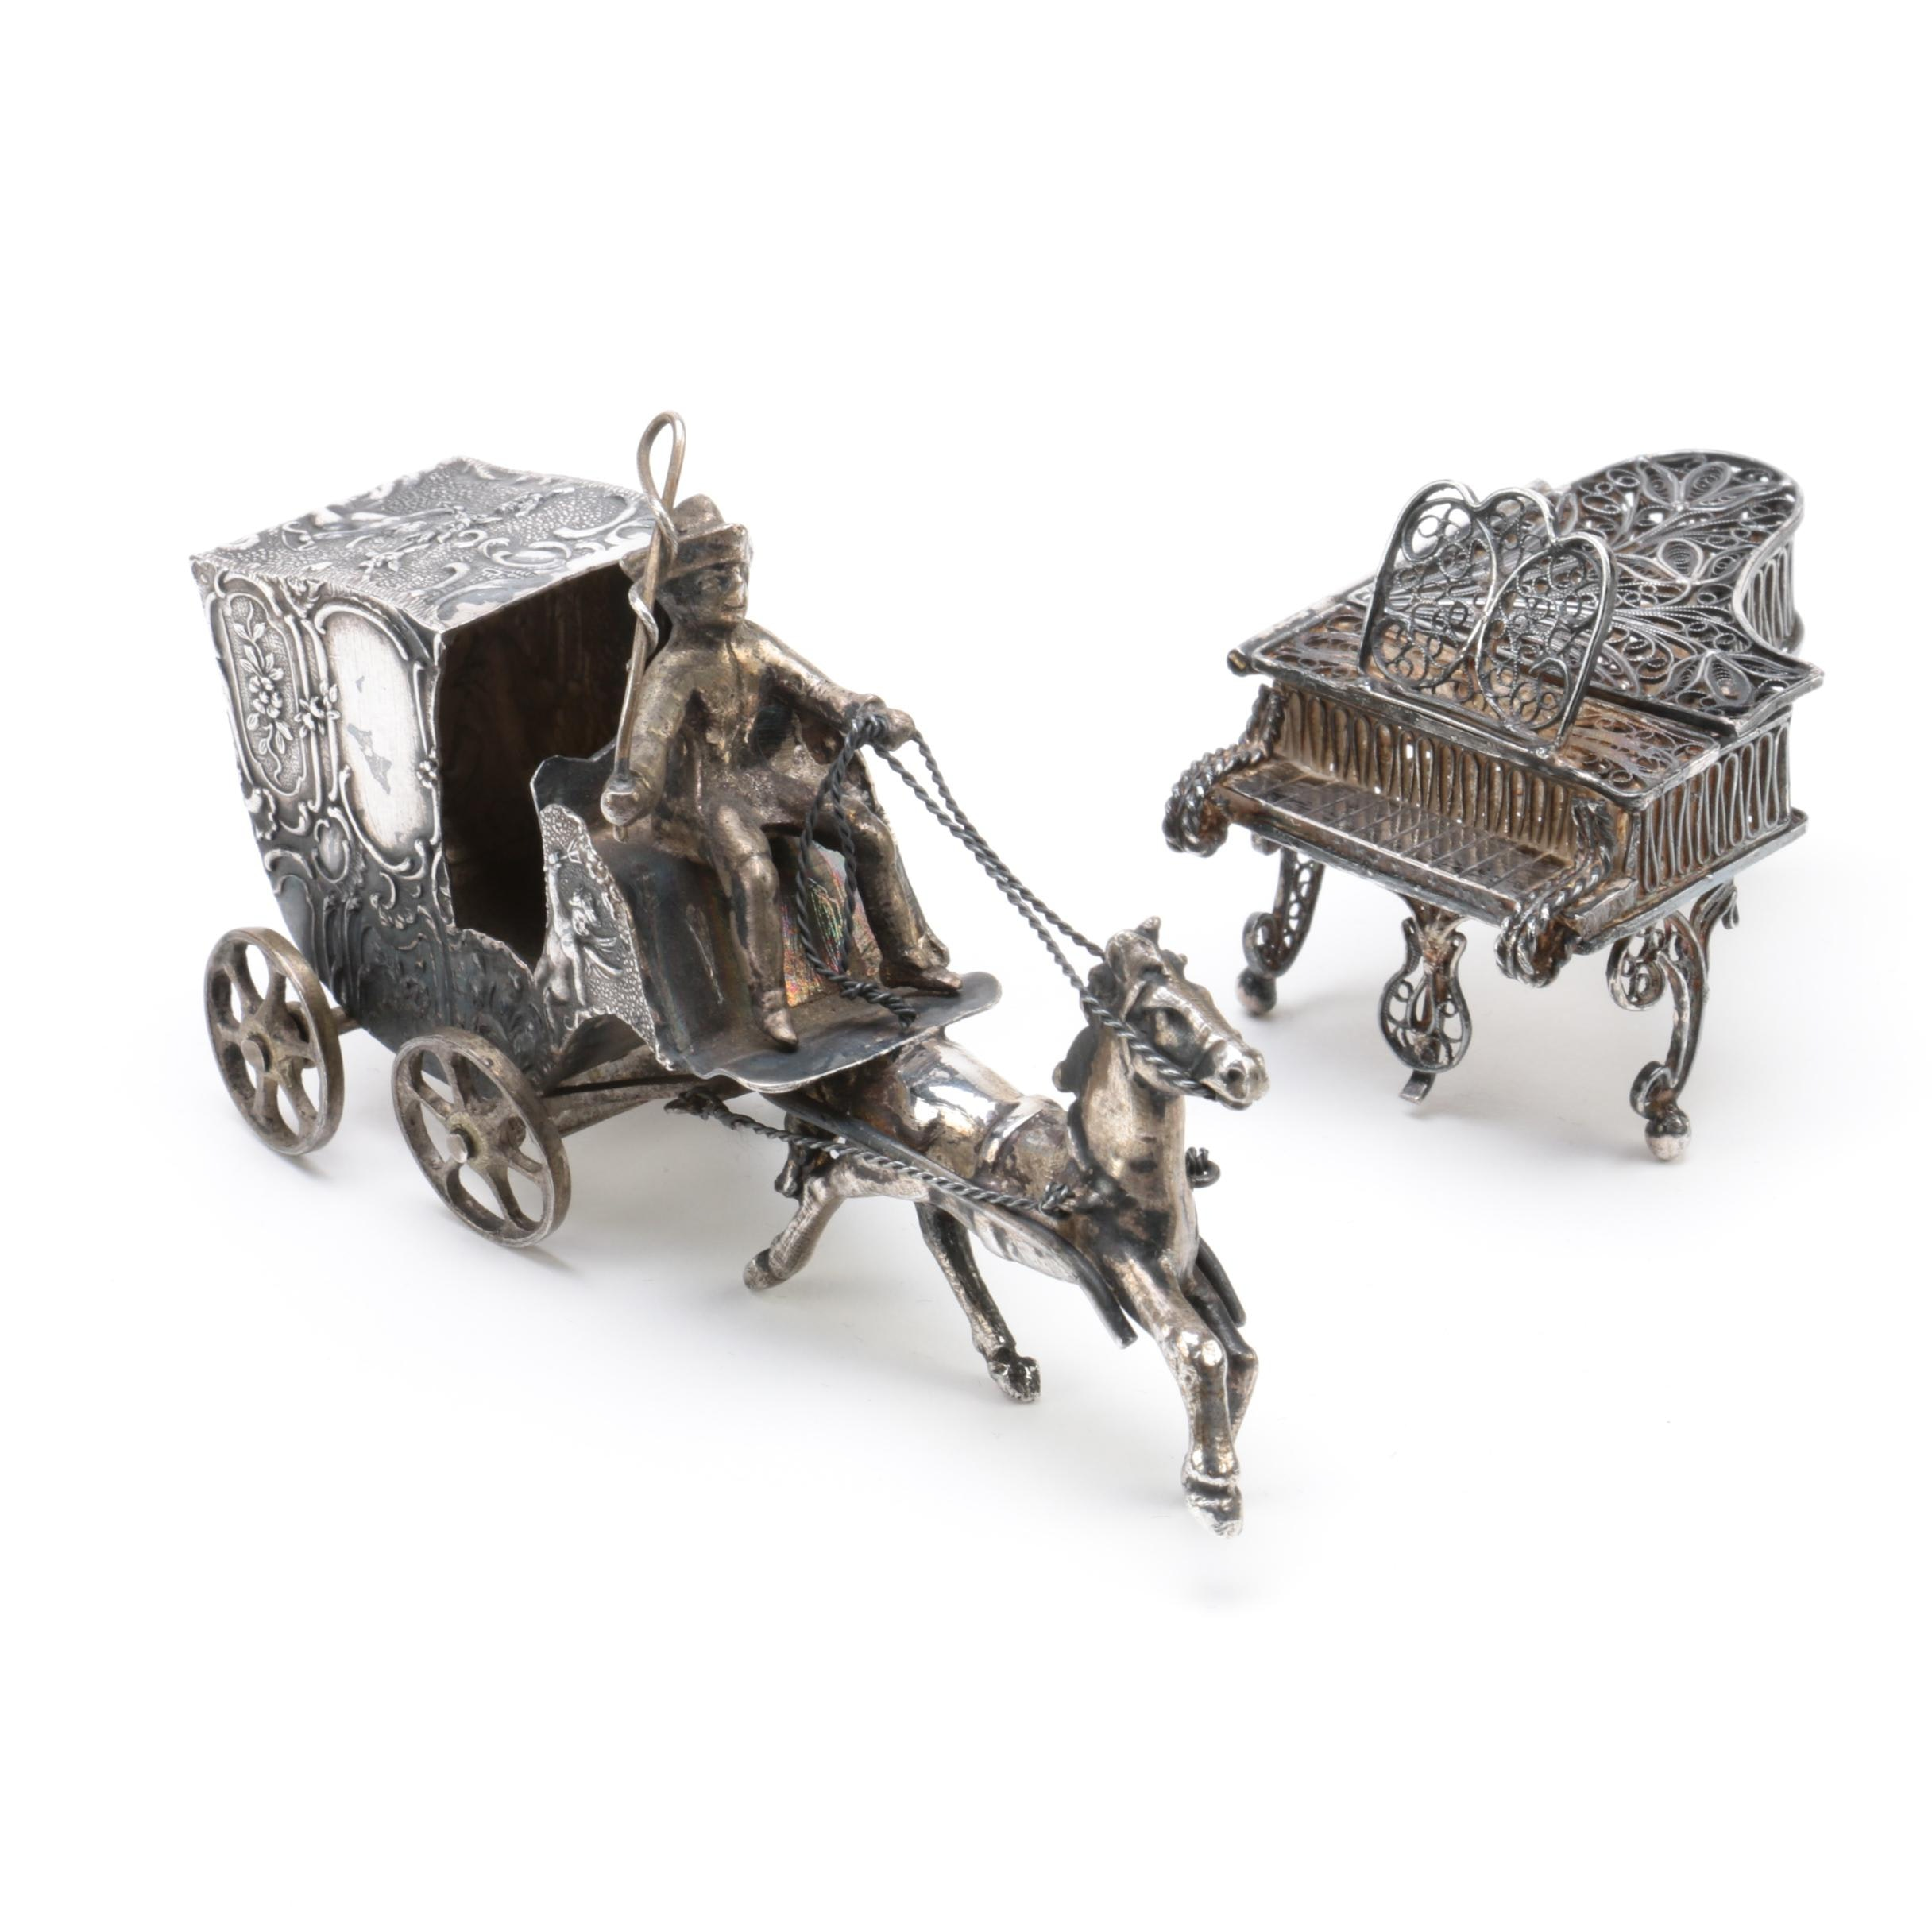 800 Silver Miniature Carriage and Filigree Piano Figurines